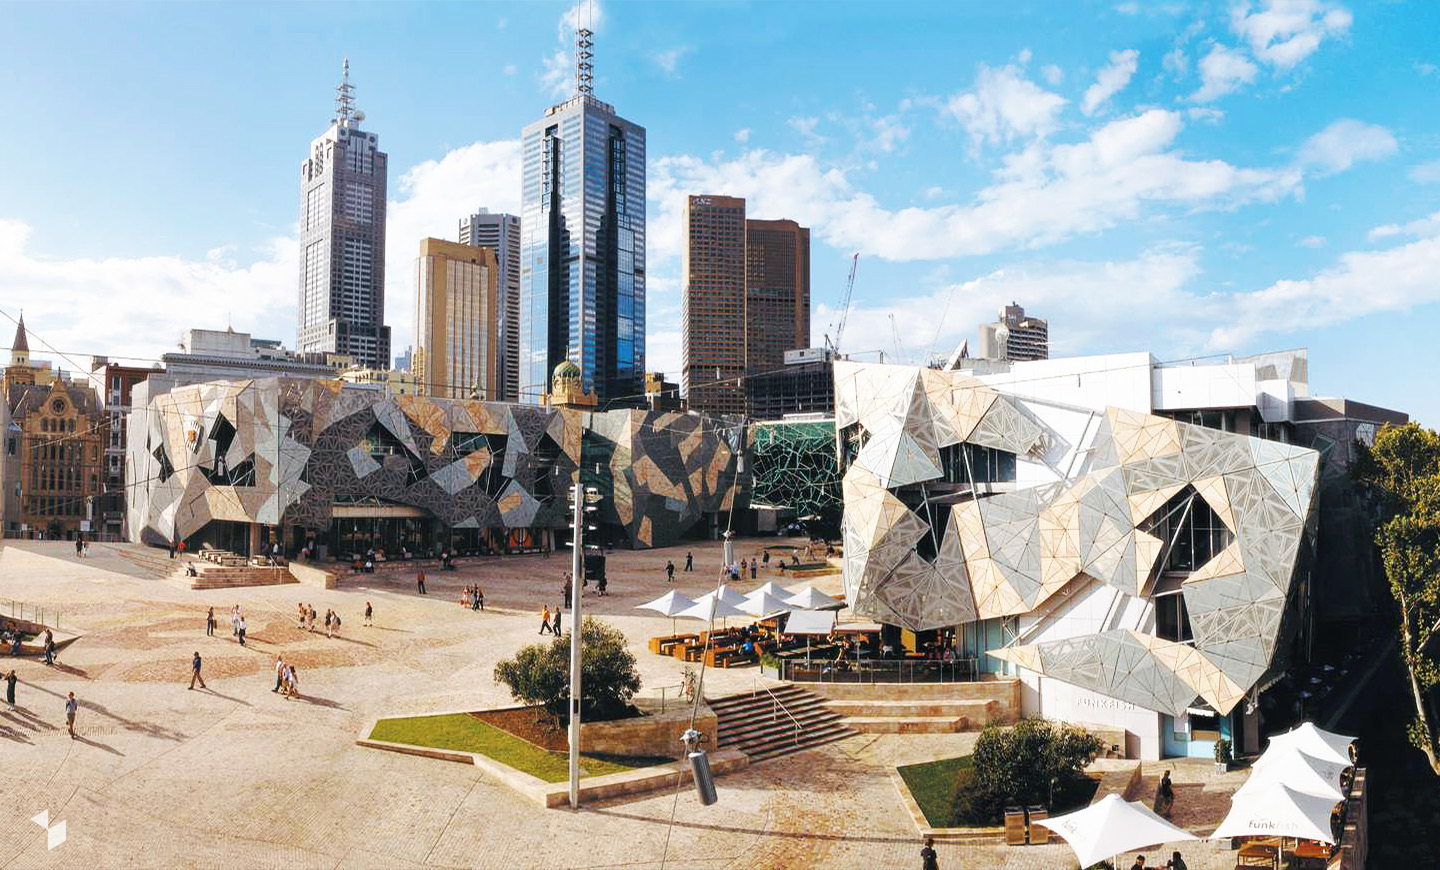 Federation Square in Melbourne, Australien